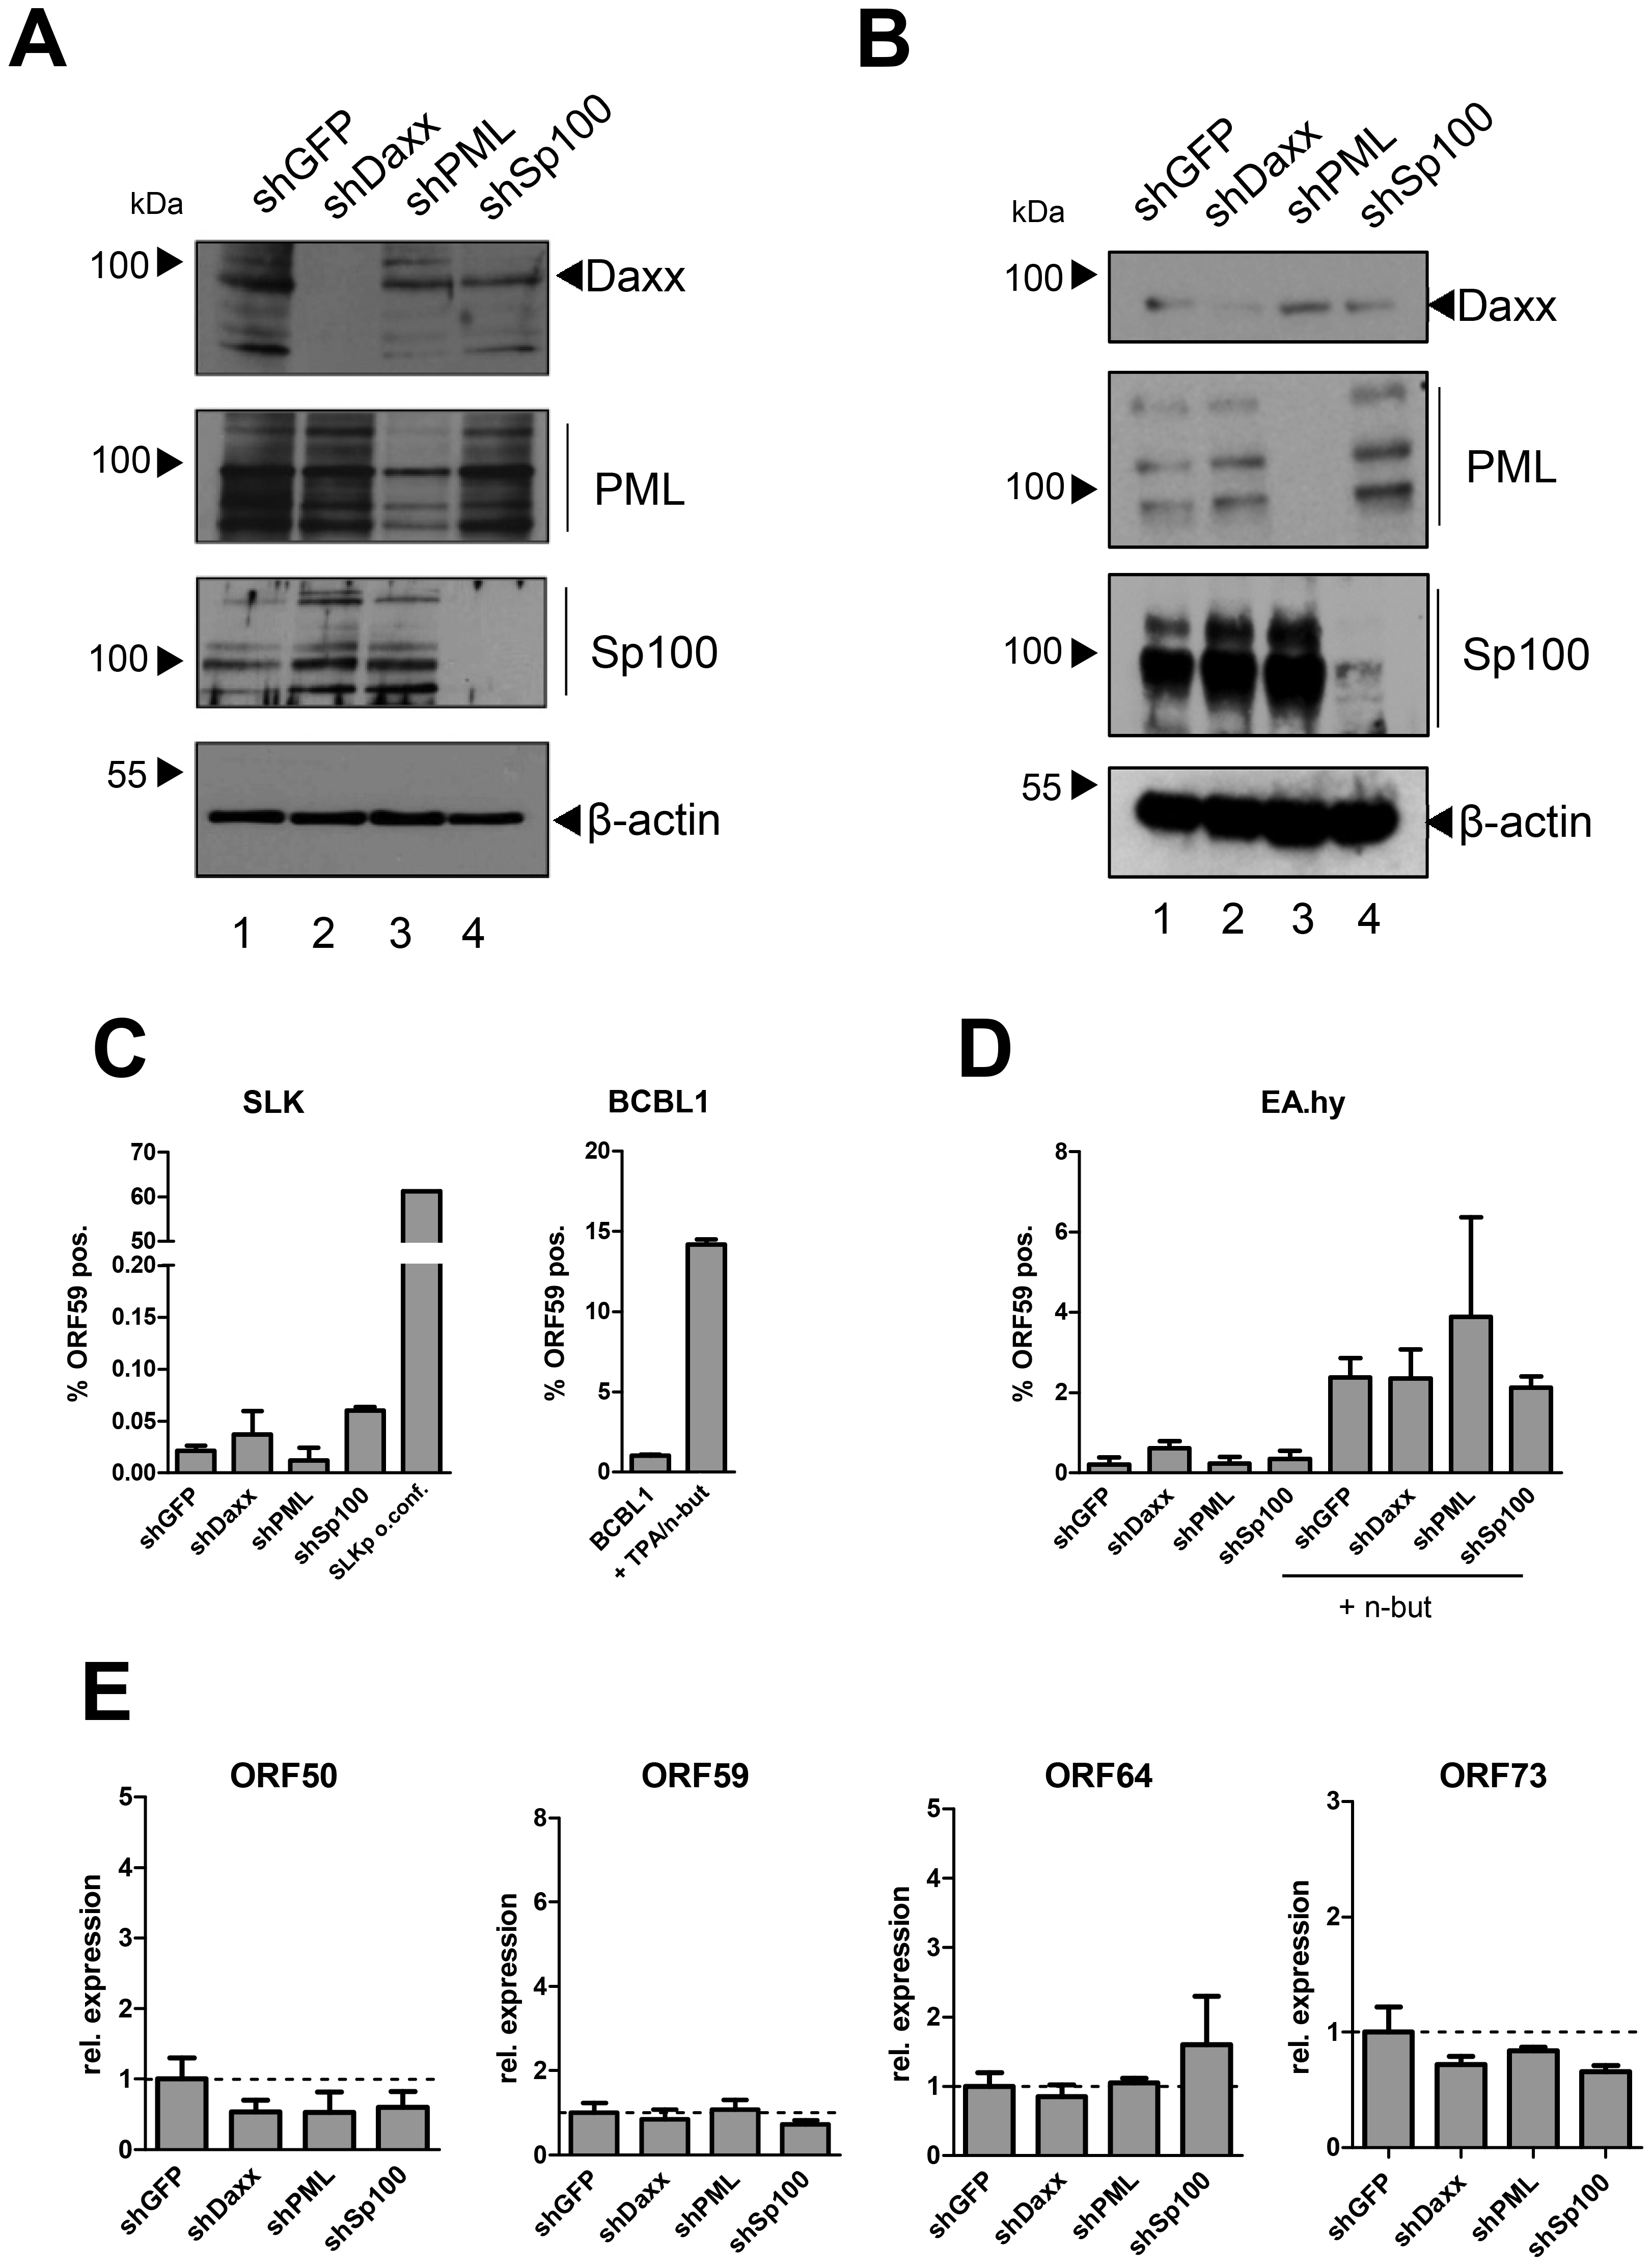 Depletion of ND10 components does not interfere with latency establishment in SLK or EA.hy cells.